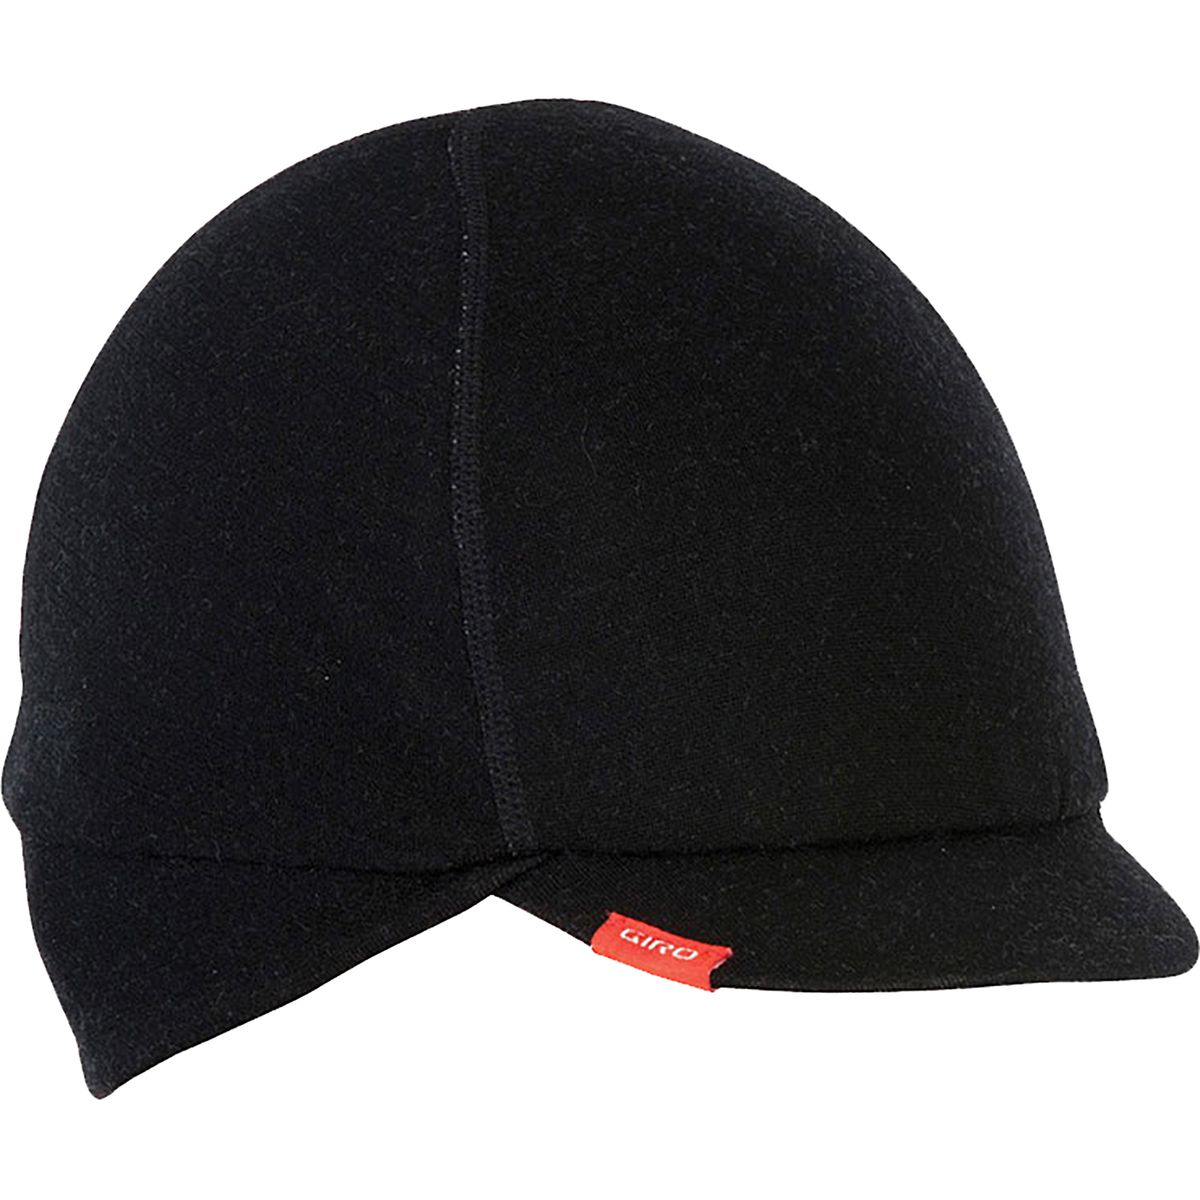 Giro Merino Winter Cap Competitive Cyclist